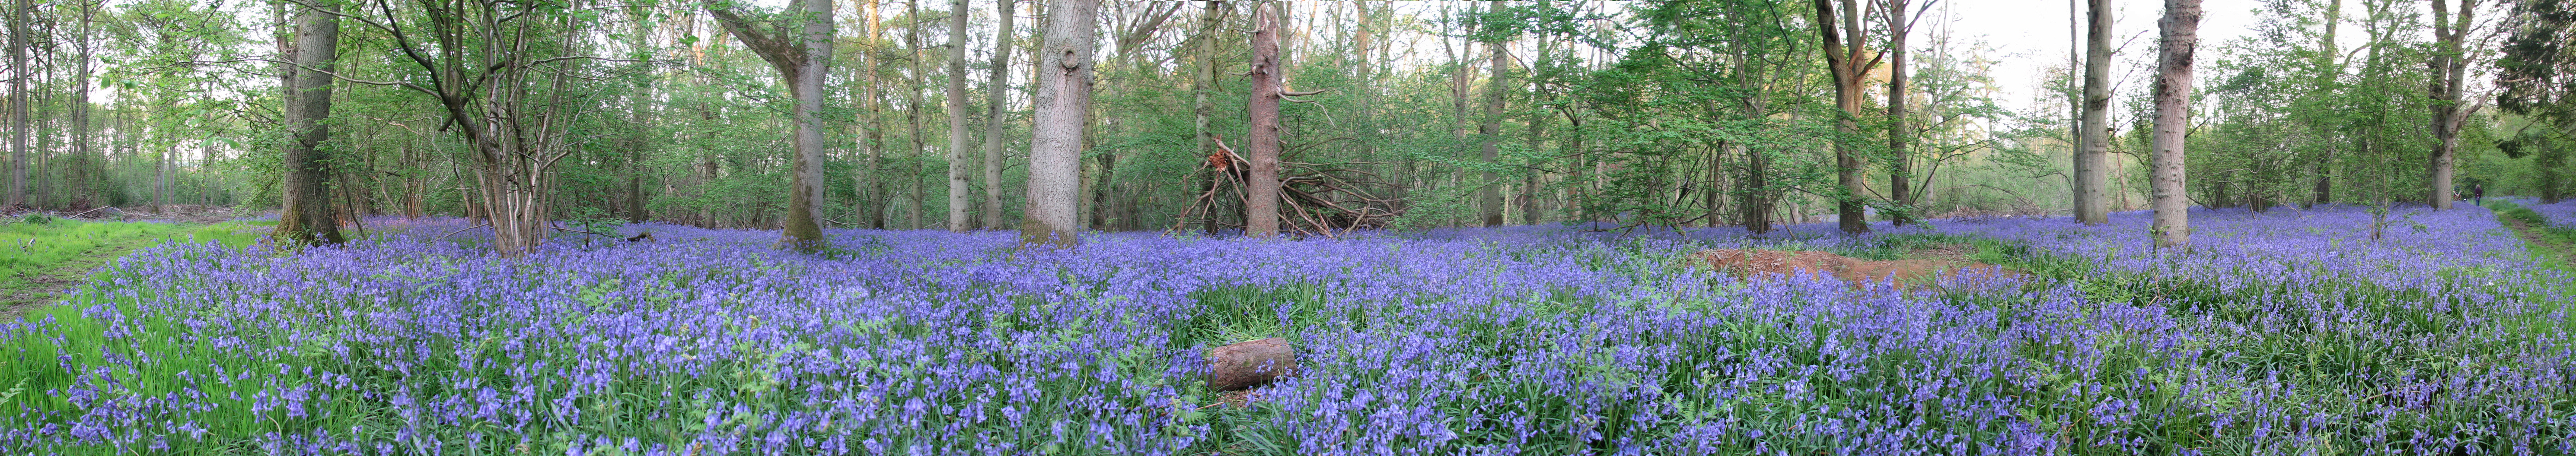 https://i0.wp.com/upload.wikimedia.org/wikipedia/commons/5/5f/Bucknell_Wood_-_Bluebells.jpg